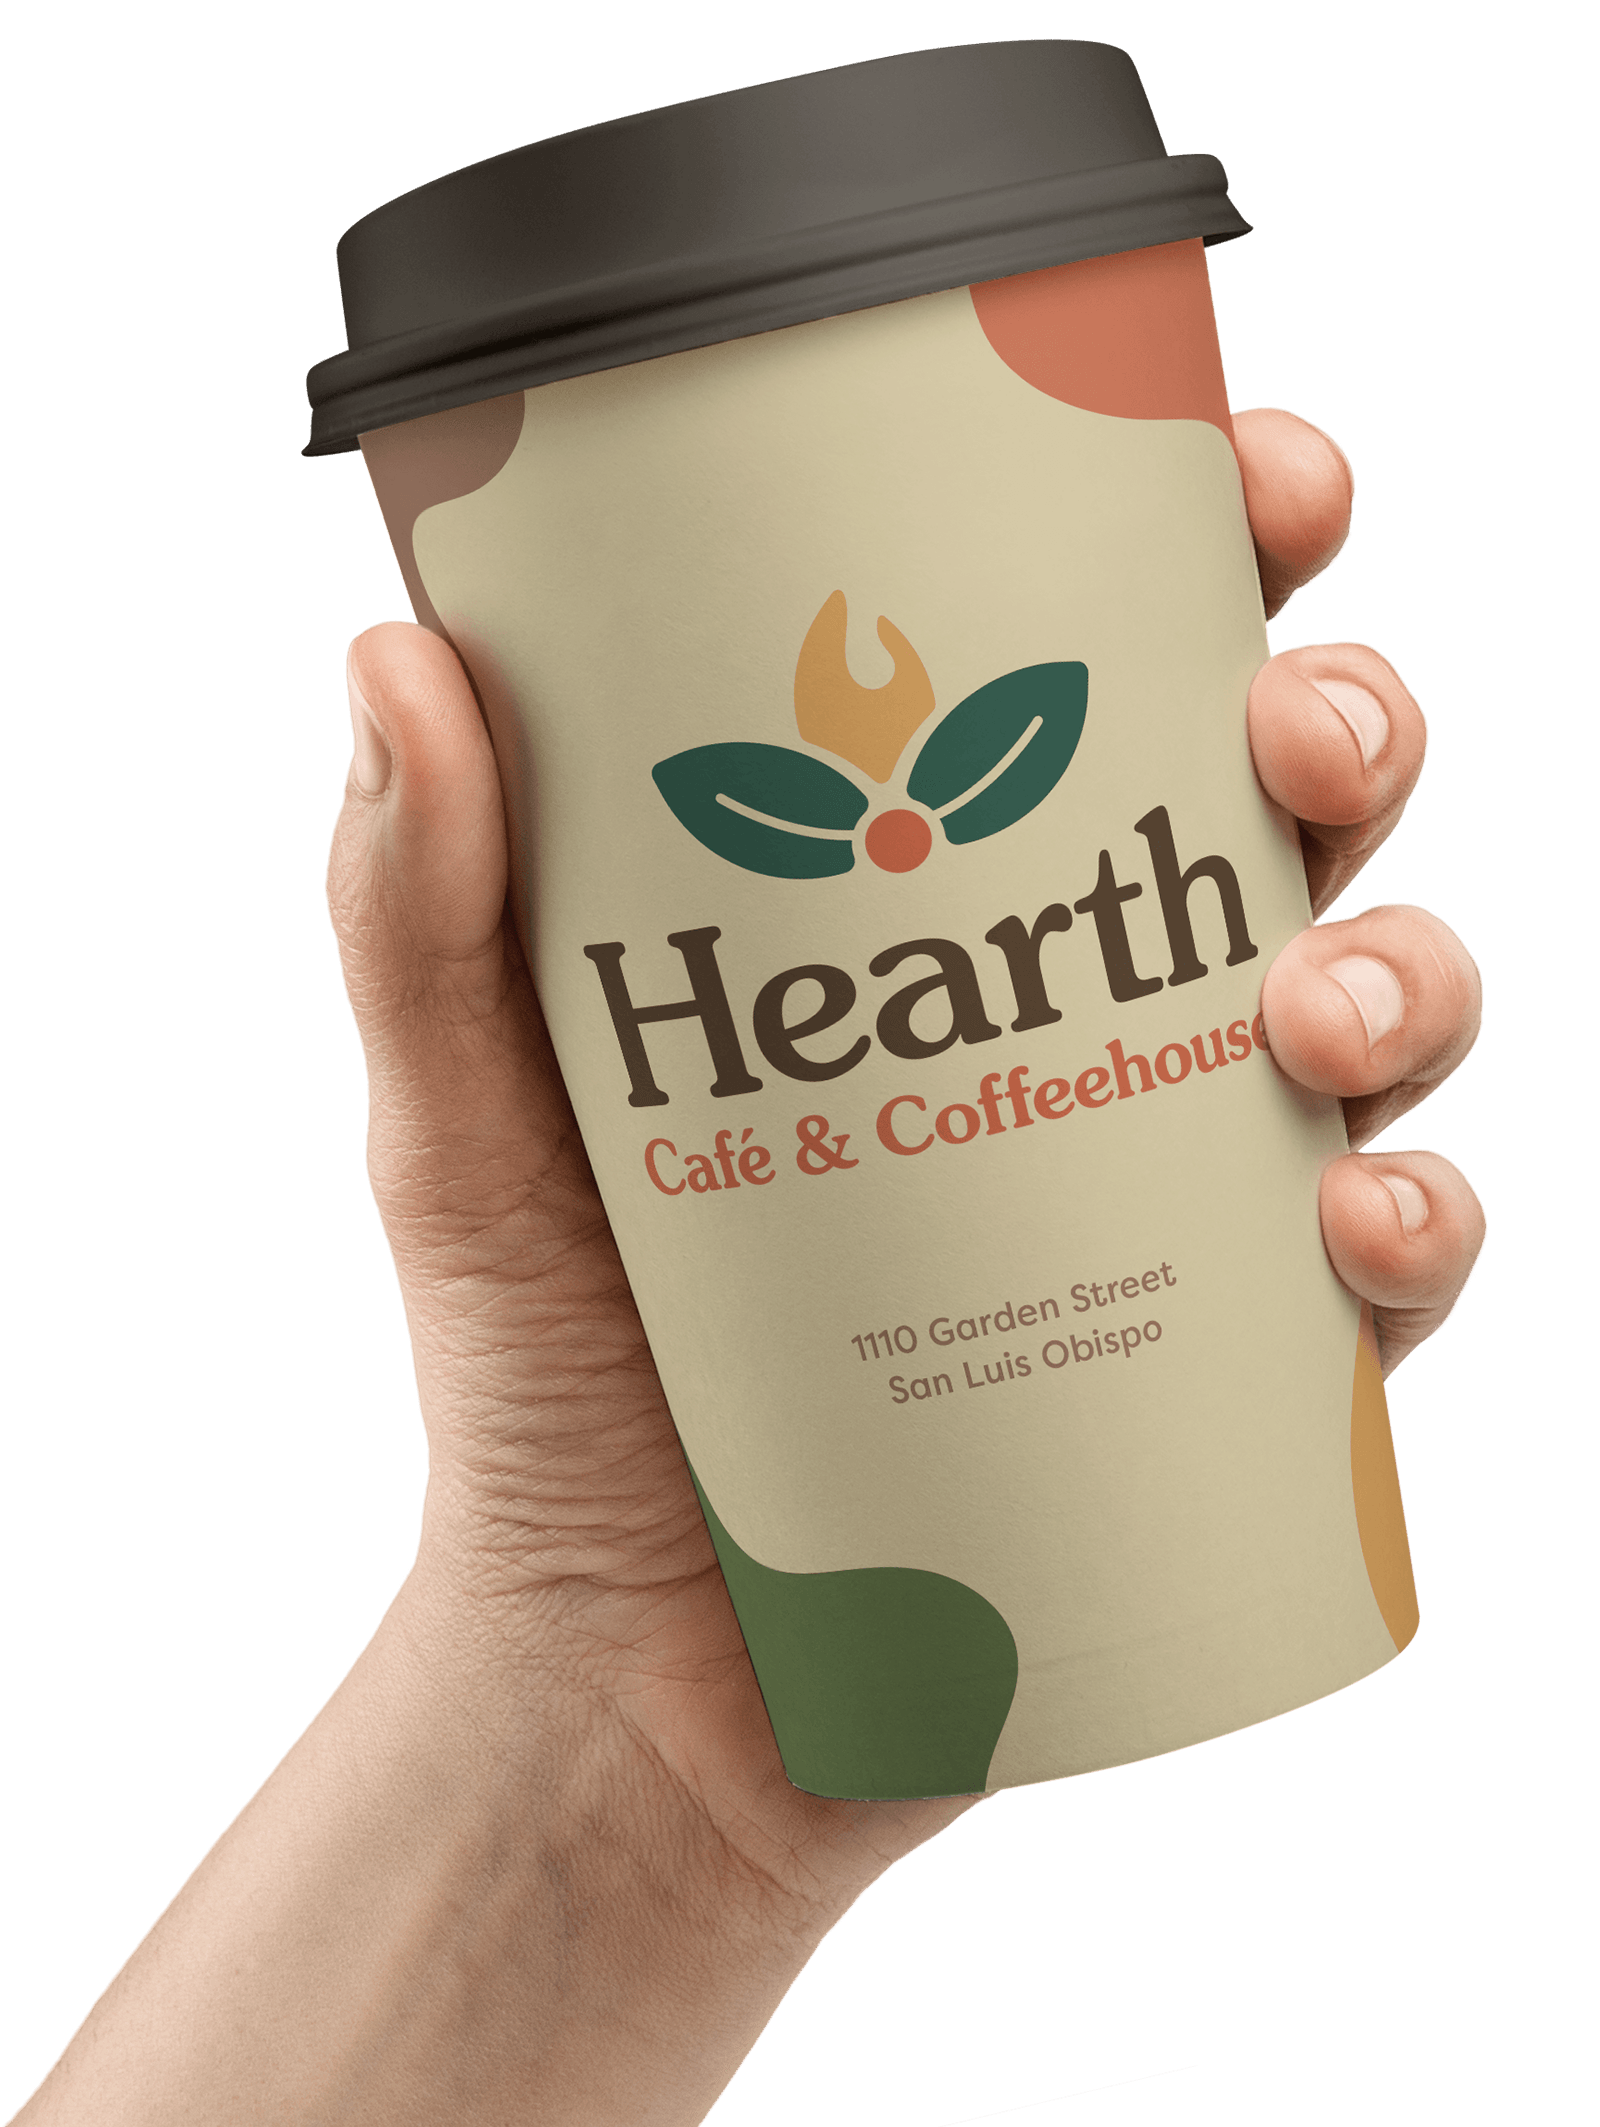 A hand holding the rebranded Hearth to-go coffee cup at an angle